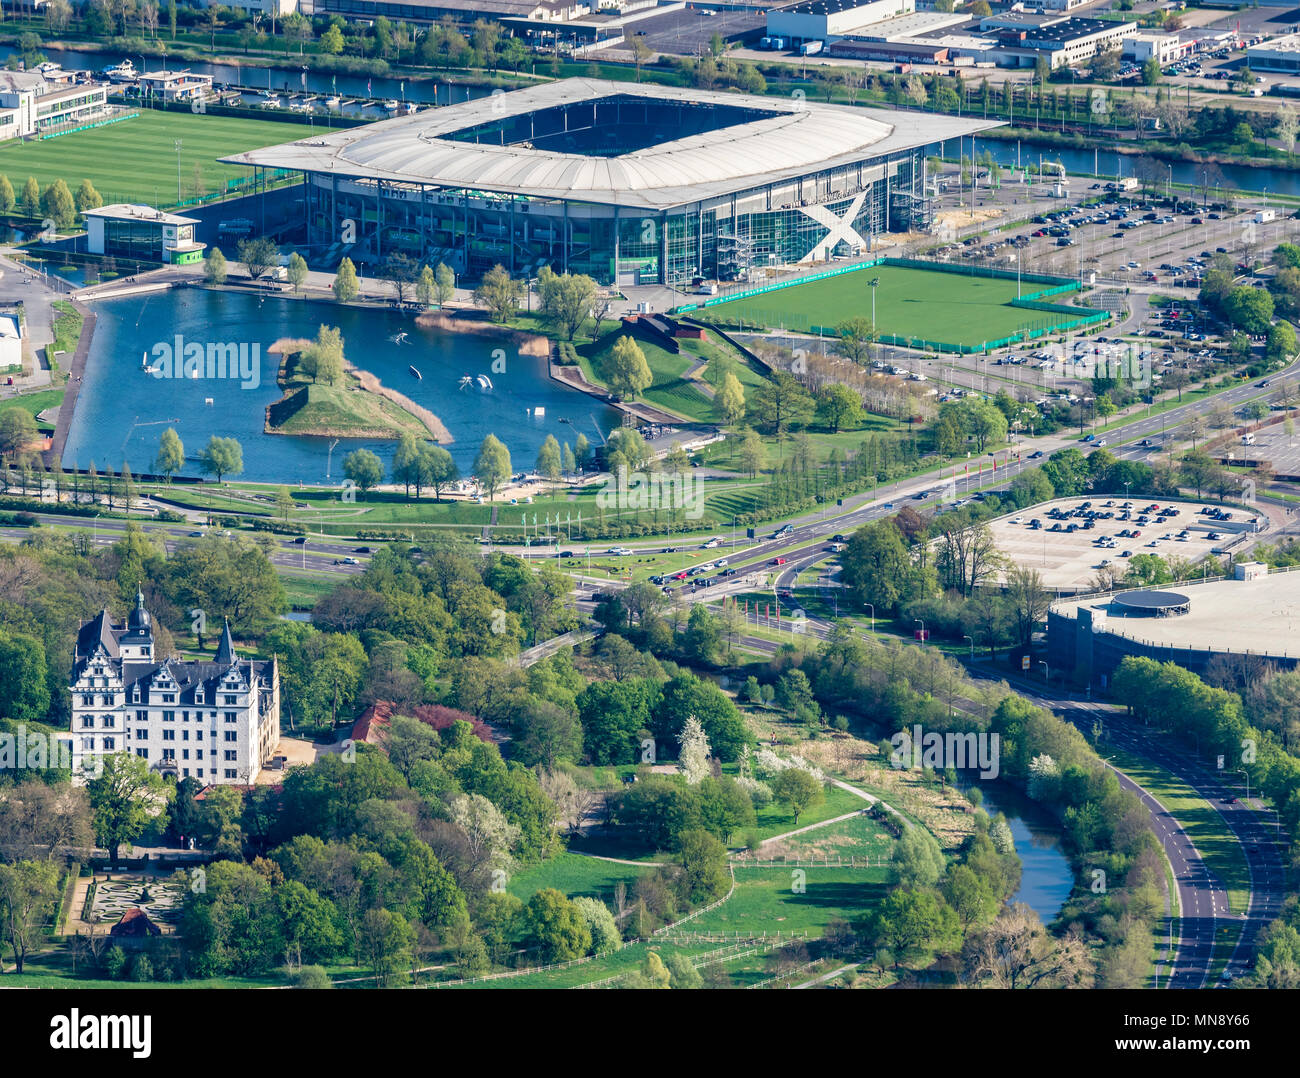 Castle Wolfsburg and Volkswagen Arena, stadium, Wolfsburg, Lower-Saxony, Germany - Stock Image